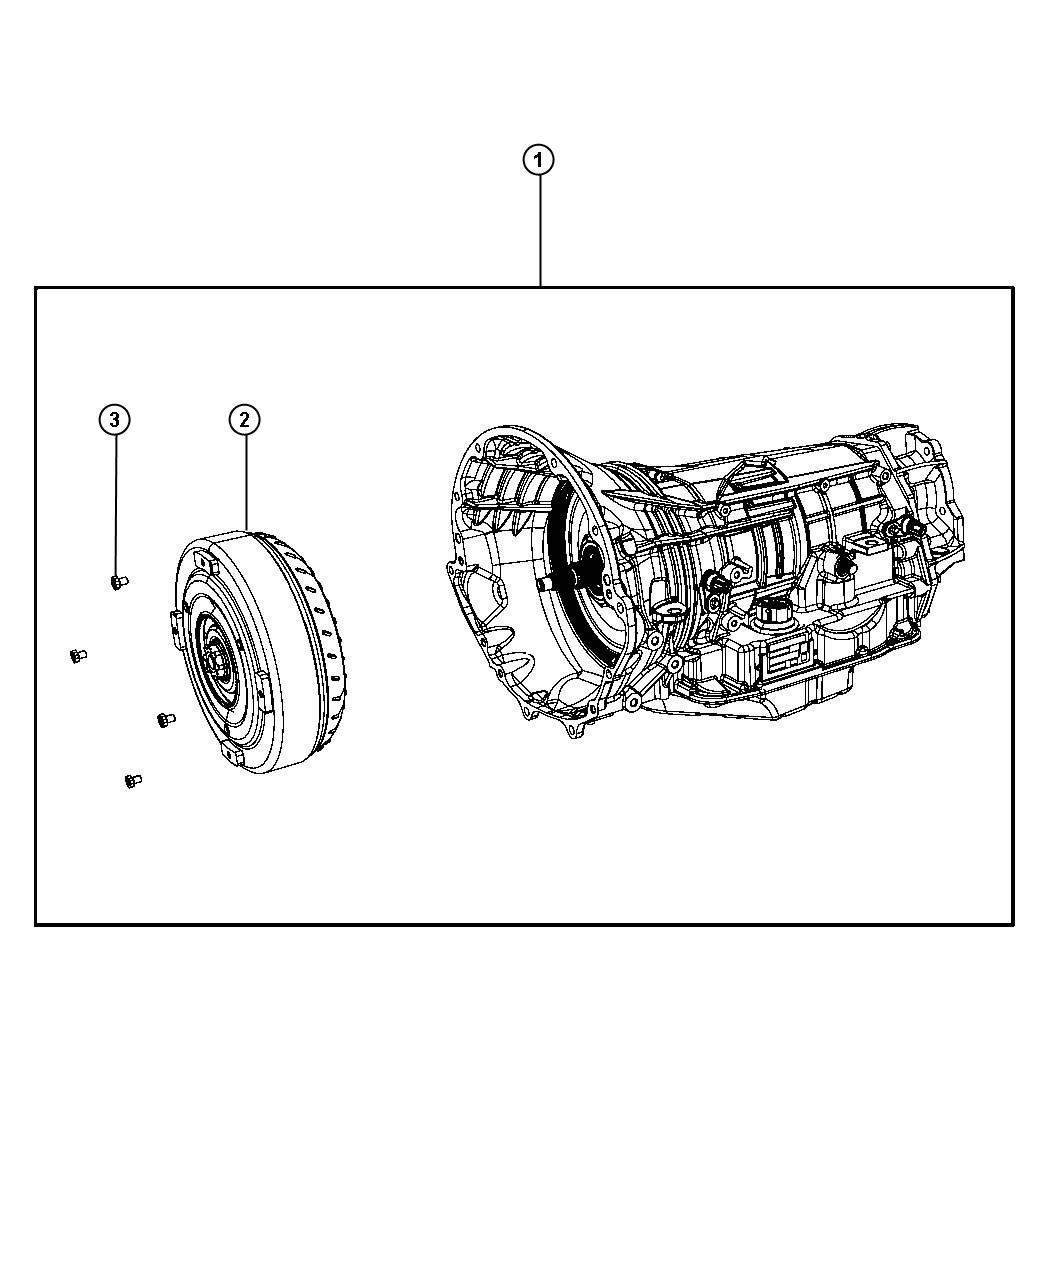 Dodge Durango Transmission Package With Torque Converter